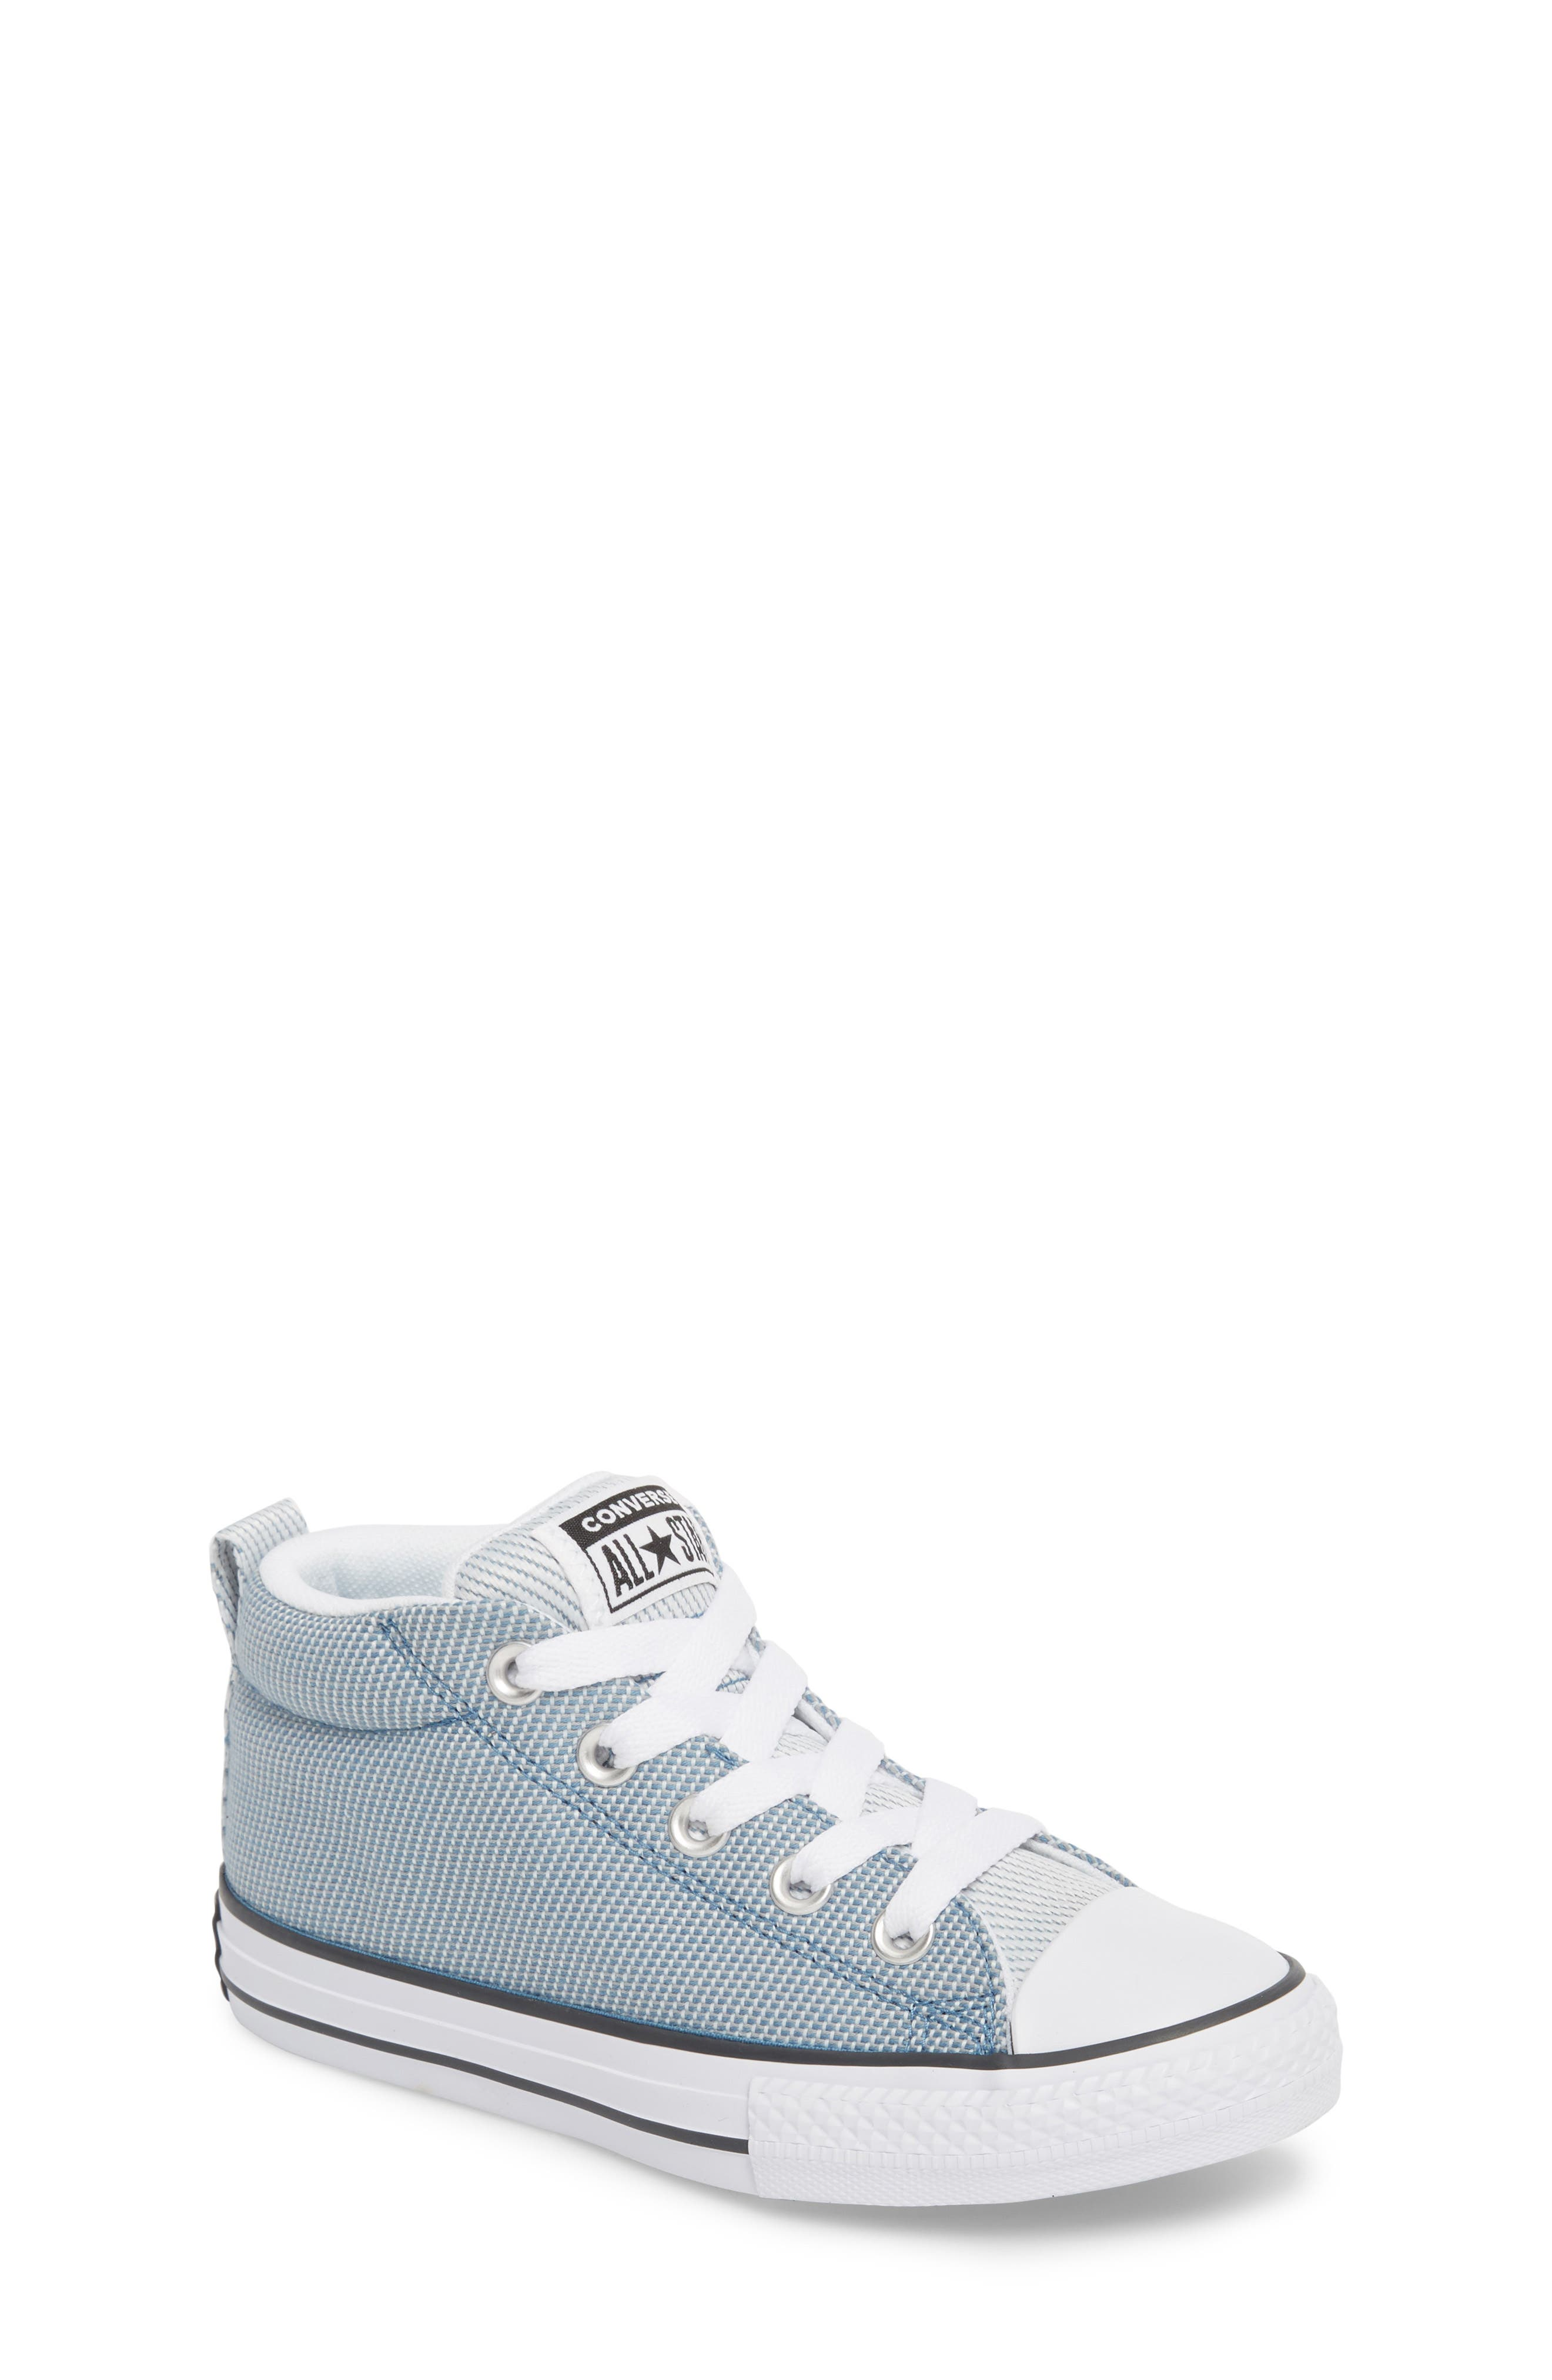 Chuck Taylor<sup>®</sup> All Star<sup>®</sup> Woven Street Mid Sneaker,                             Main thumbnail 1, color,                             400